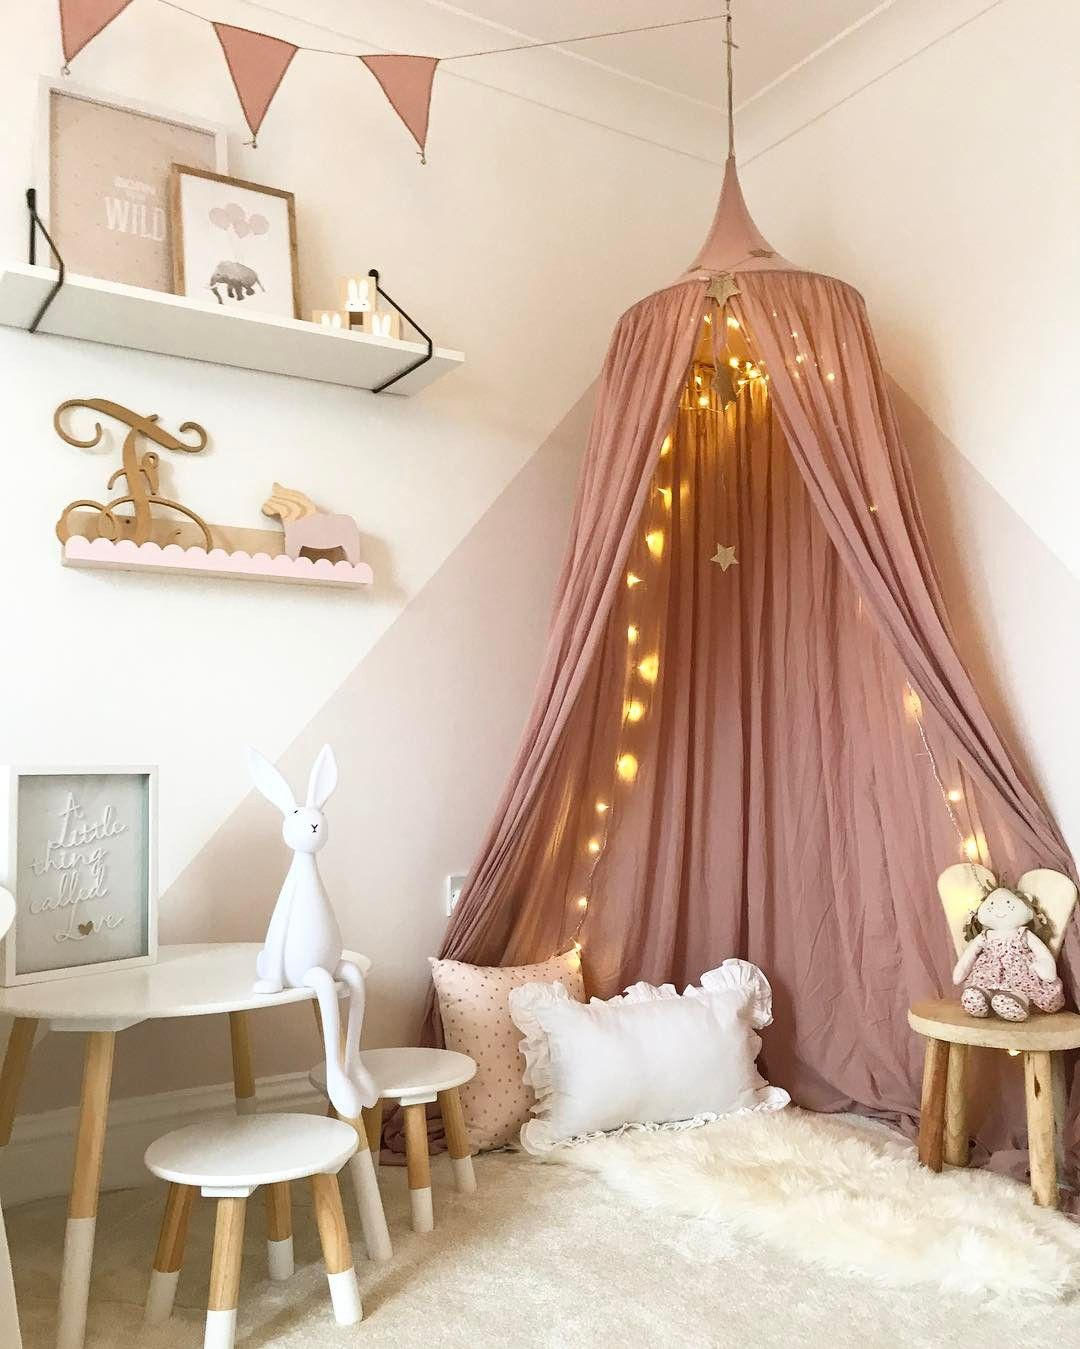 Beautiful Girlish Room Featuring Our Dusty Pink Canopy And Bunting Garland Pink Girl Room Children Room Girl Pink Bedroom Decor